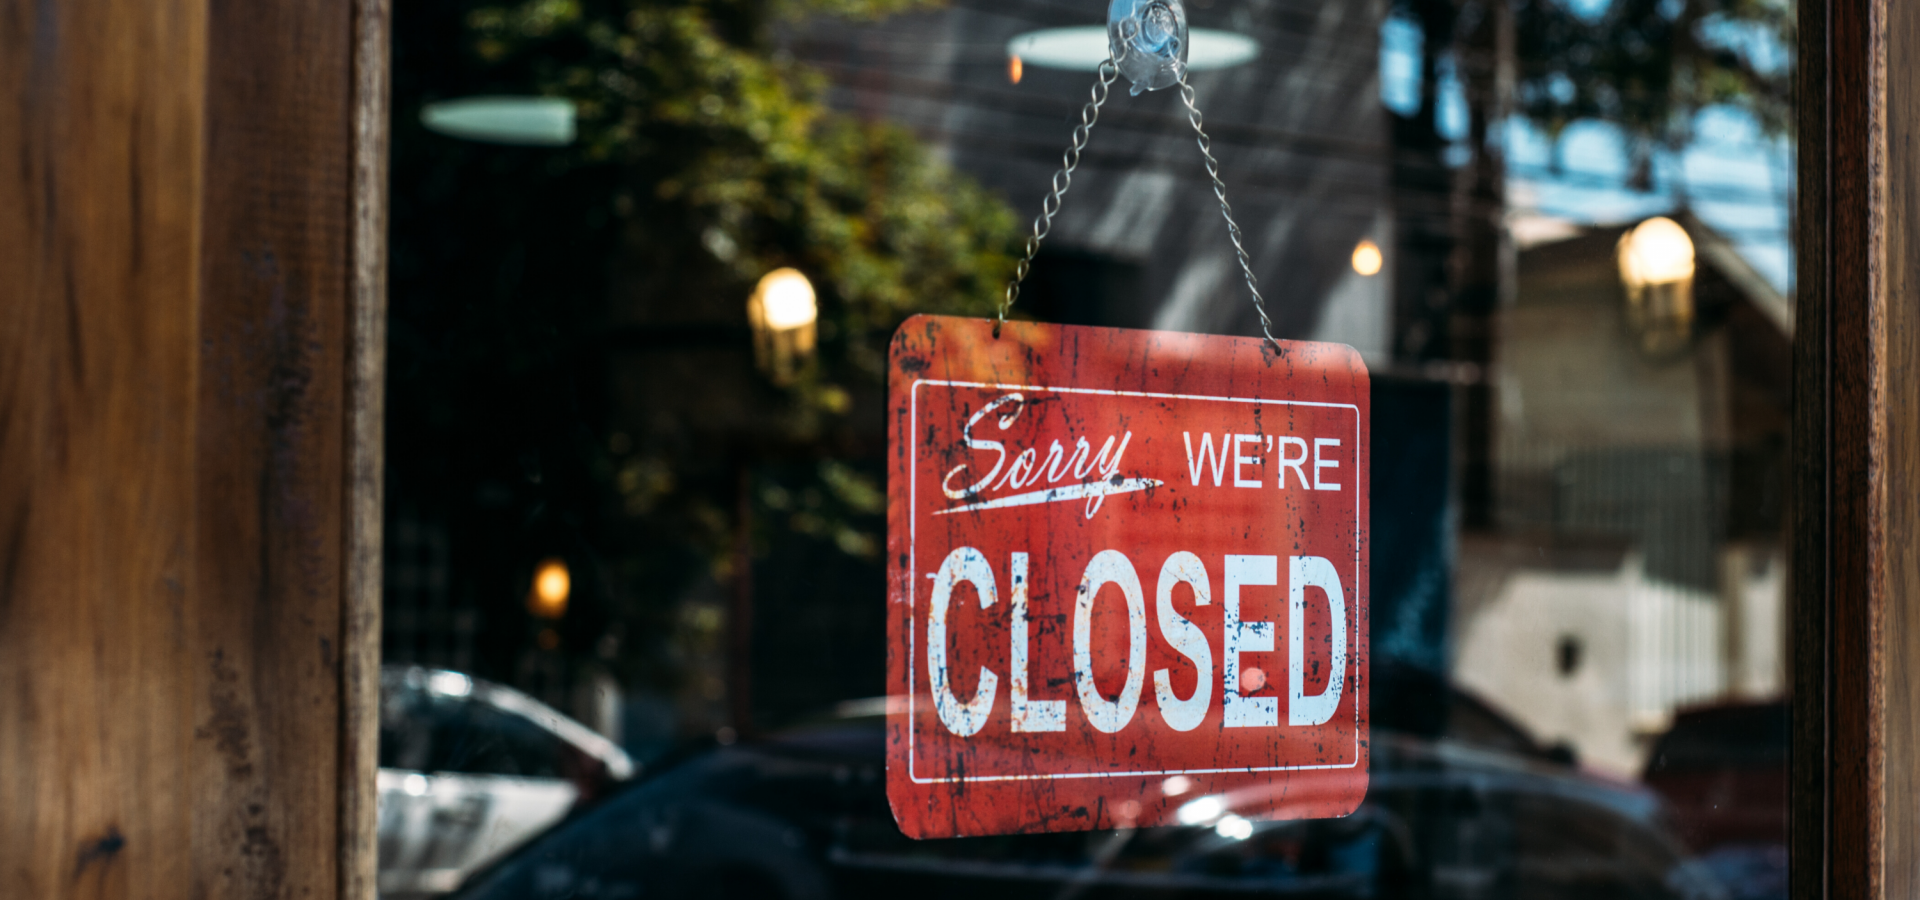 A red closed sign hangs in the glass door of a business.